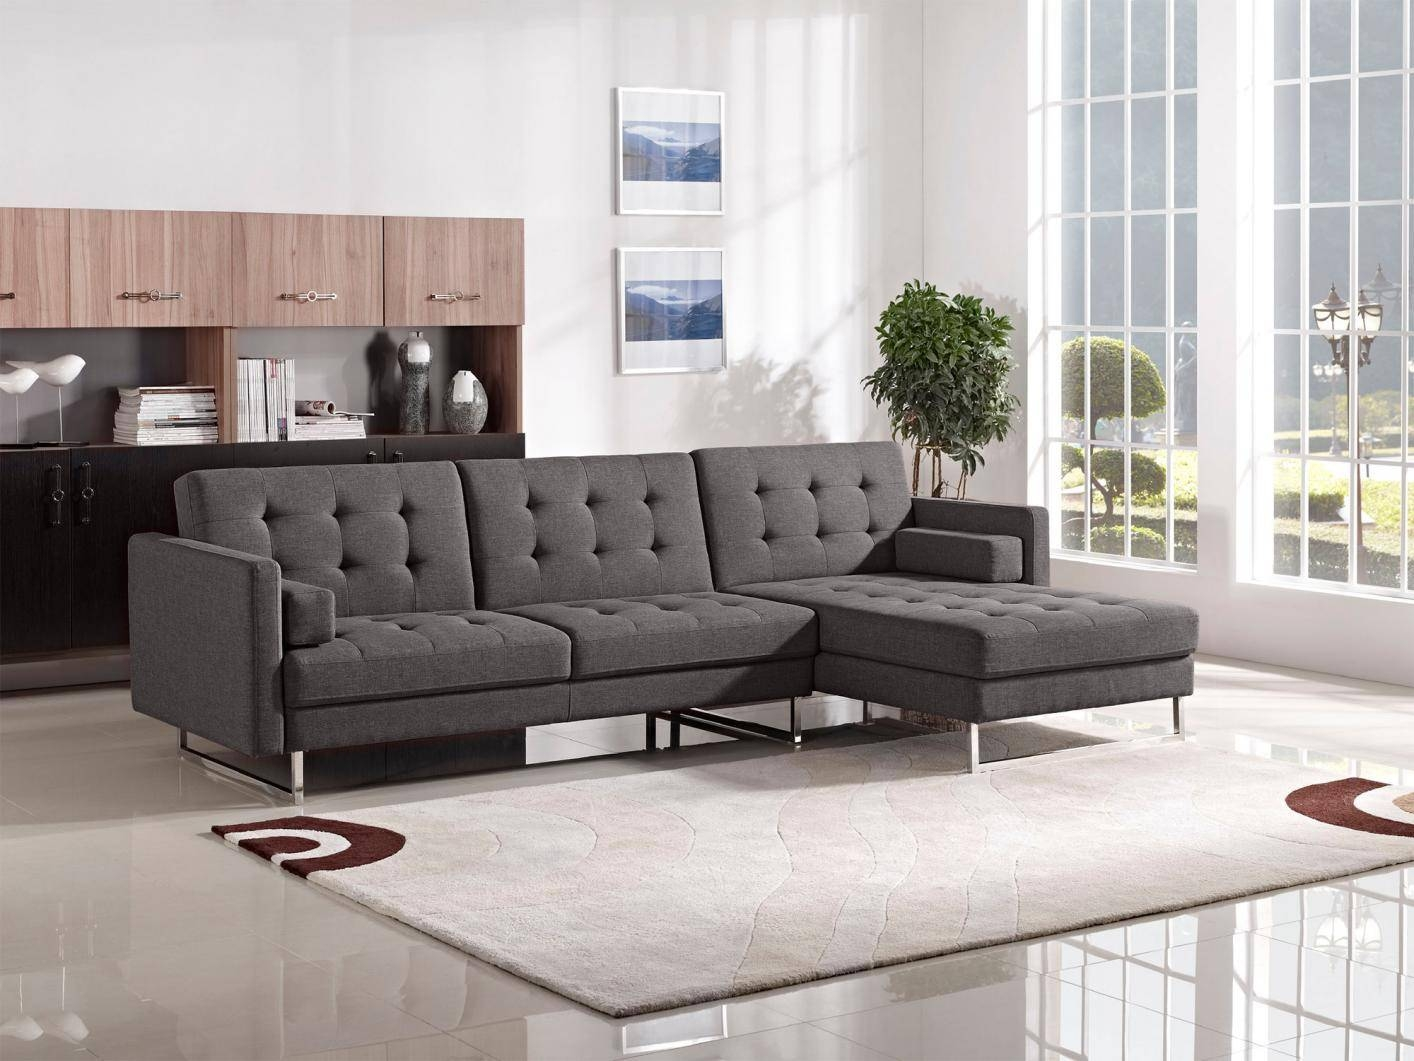 Sofas Center : Grey Fabric Sectional Sofa Awful Photos Design Tosh with regard to Abbyson Sectional Sofa (Image 30 of 30)